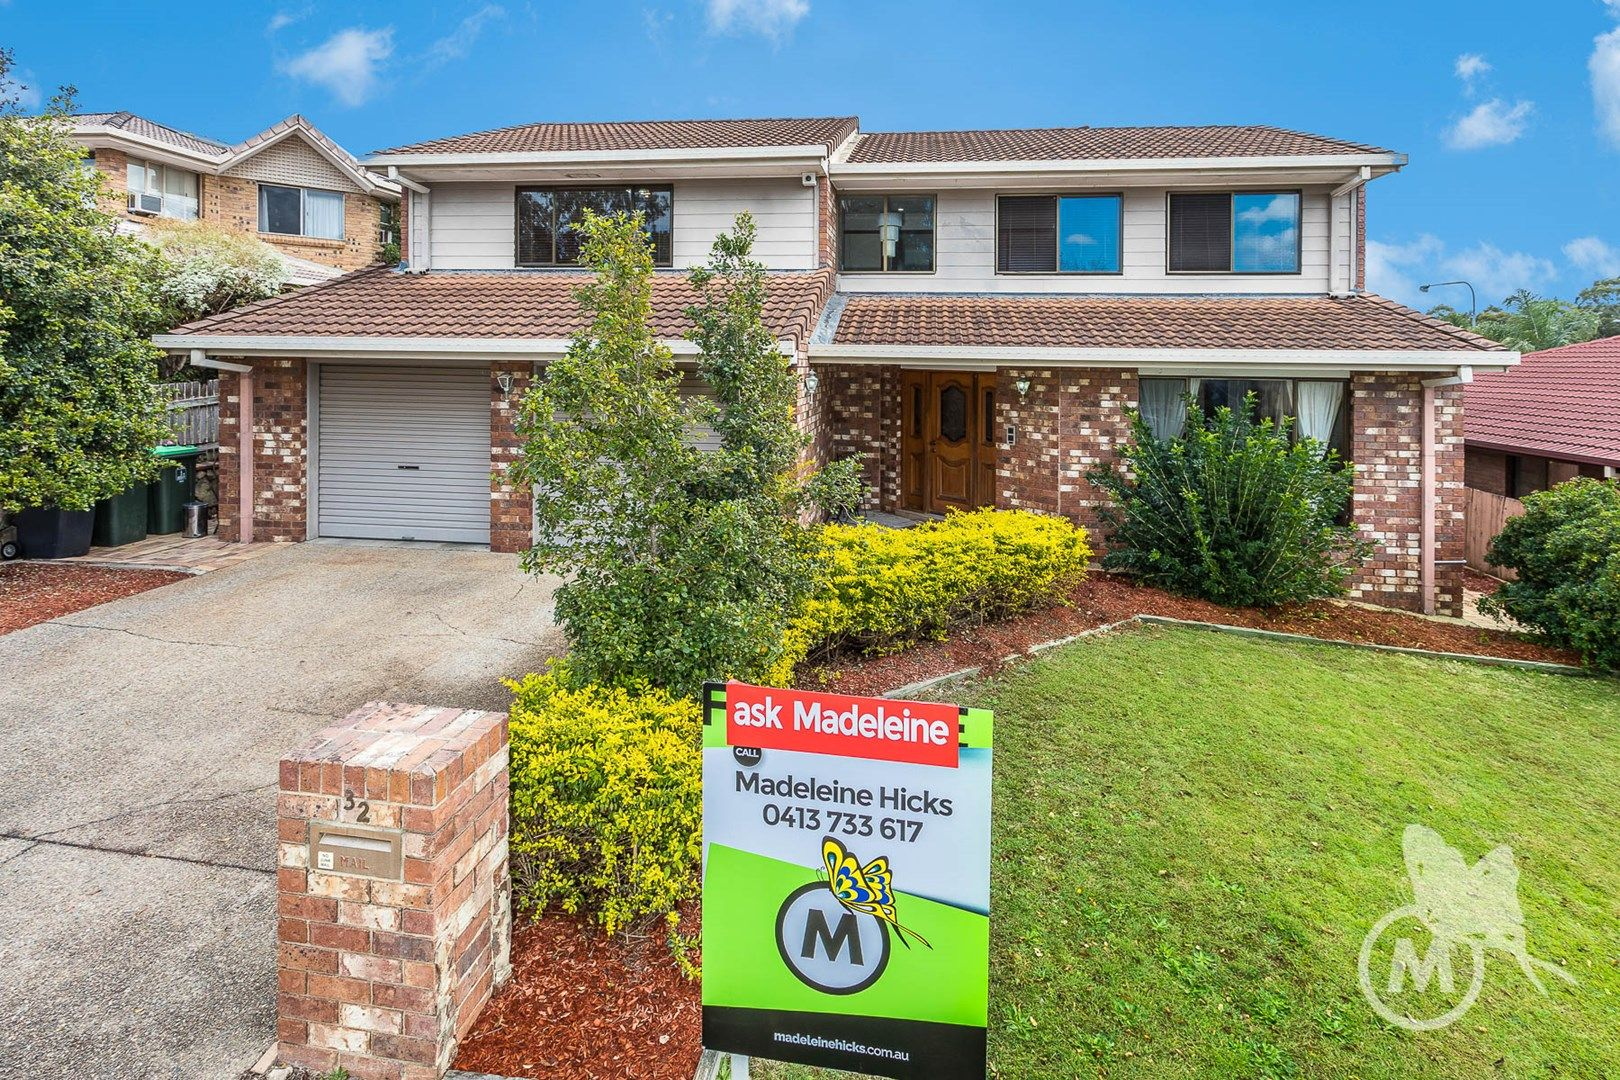 32 Boulting Street, Mcdowall QLD 4053, Image 0